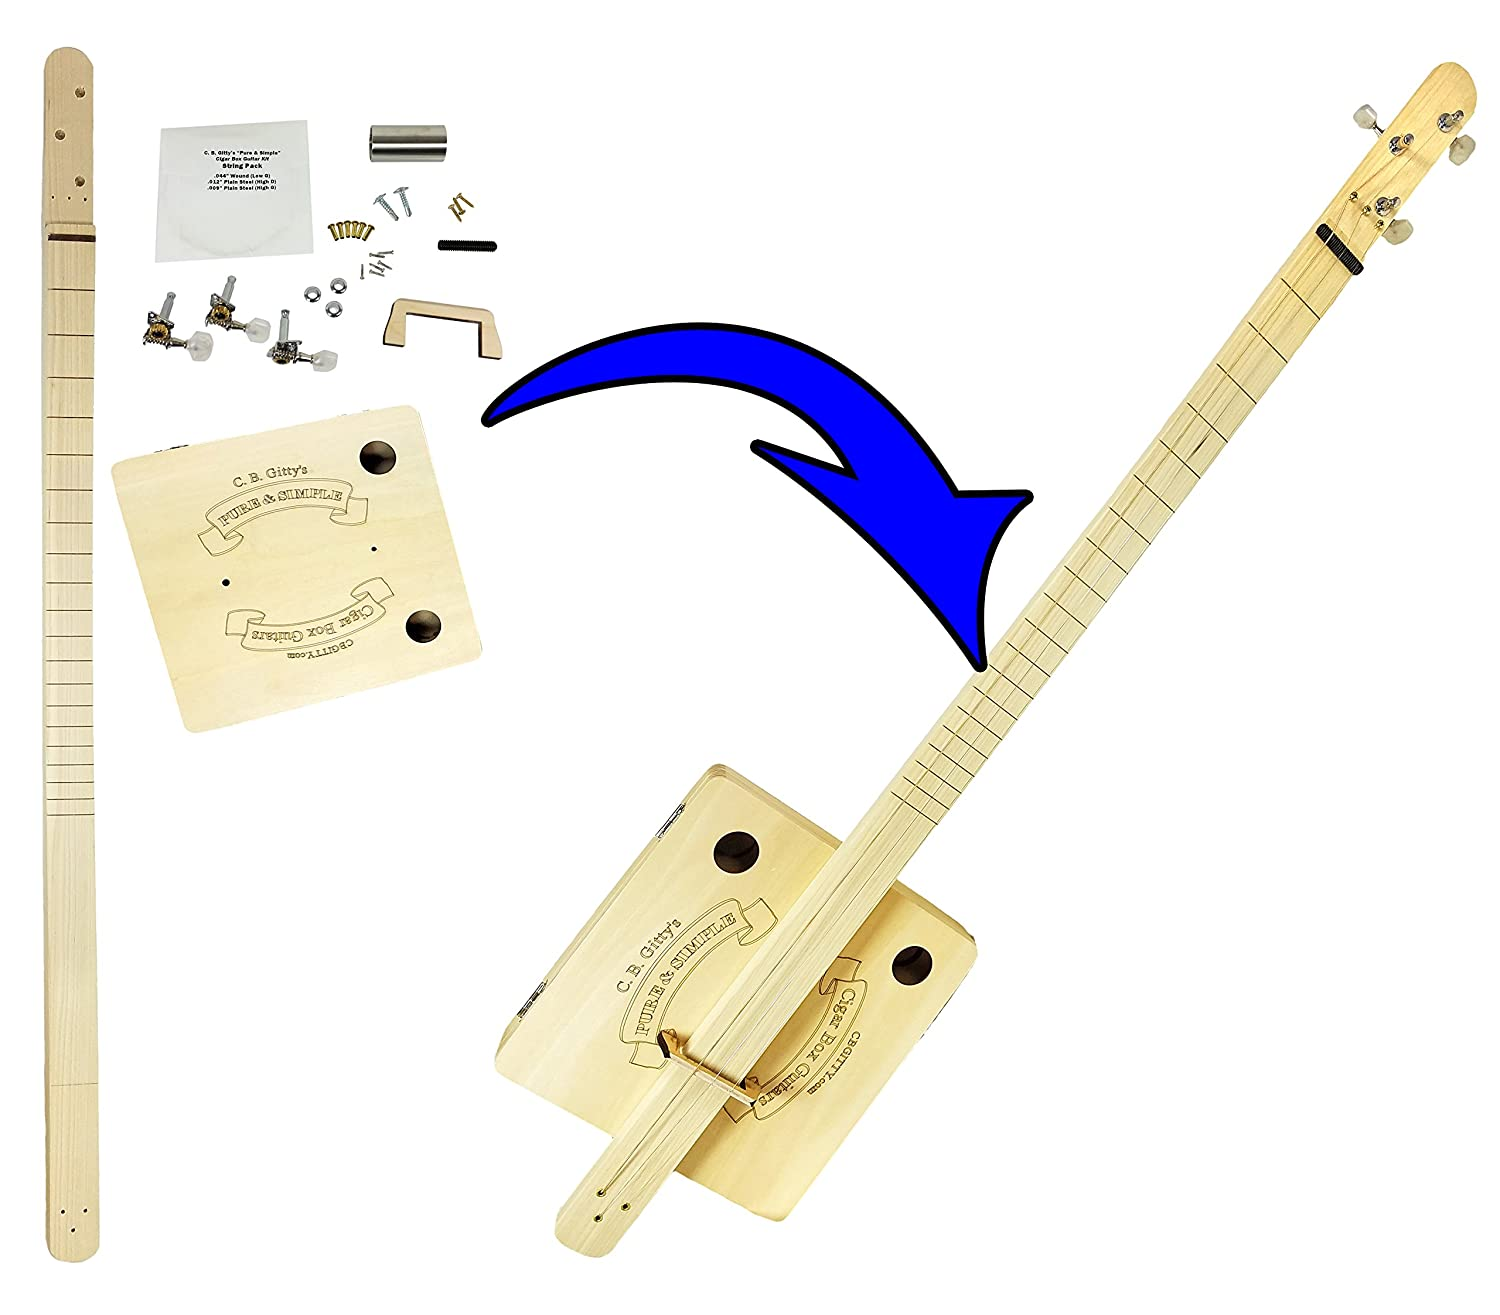 Complete Pure & Simple Cigar Box Guitar Kit - the Easiest CBG Kit to Build, Bar None!